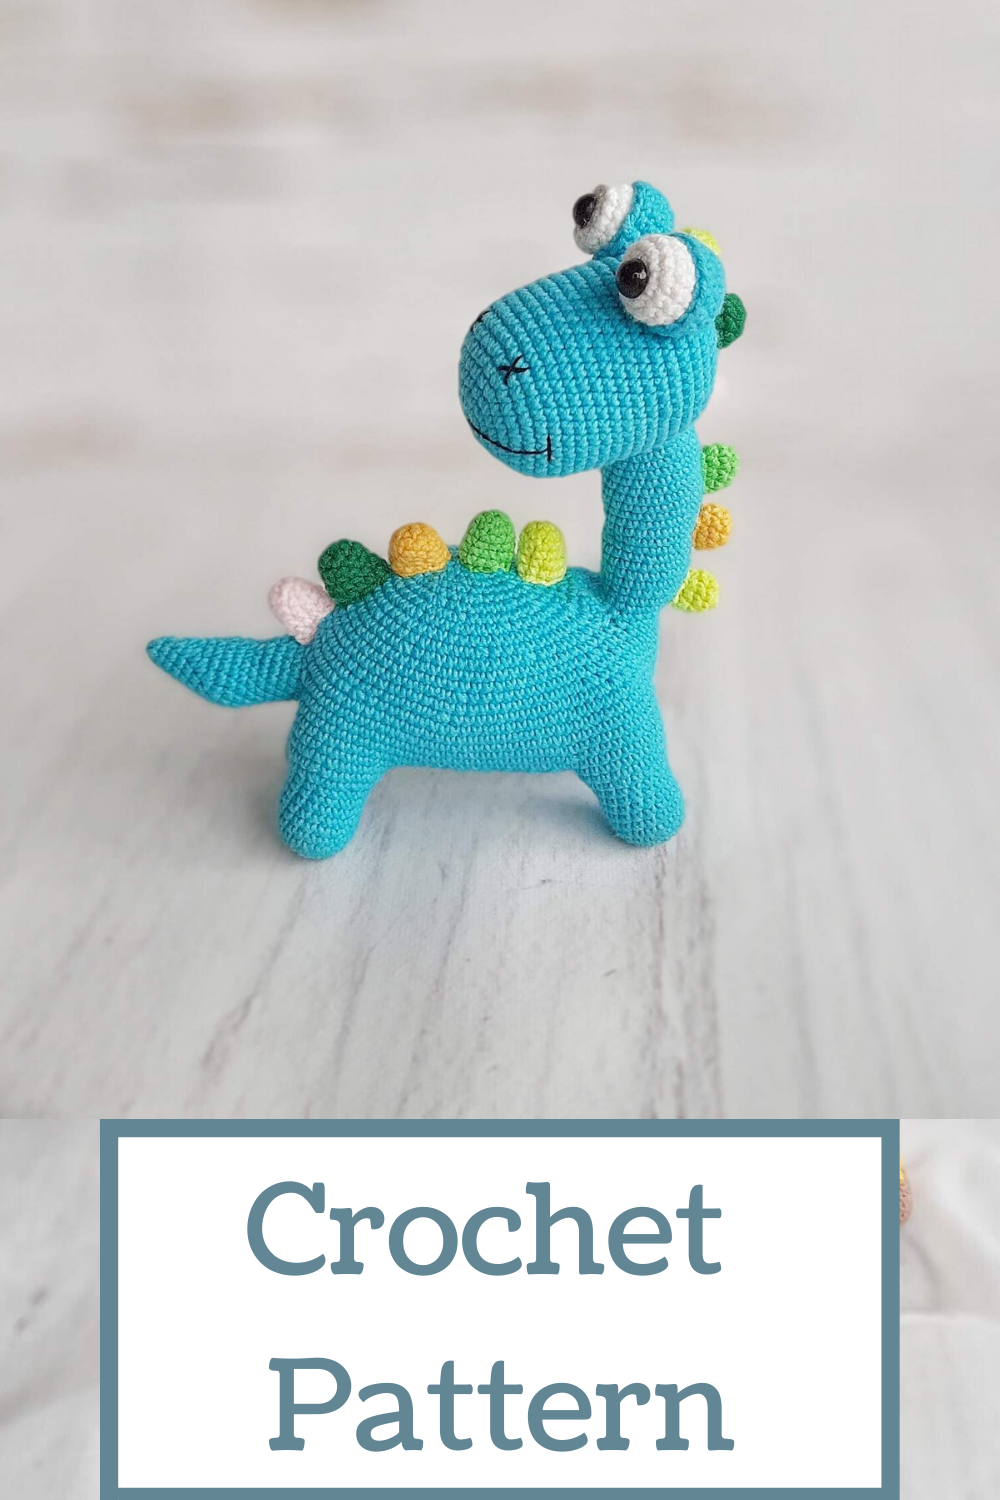 Crochet Pattern Dinosaur / Knitting Pattern Dinosaur in English Crochet Toy Amigurumi